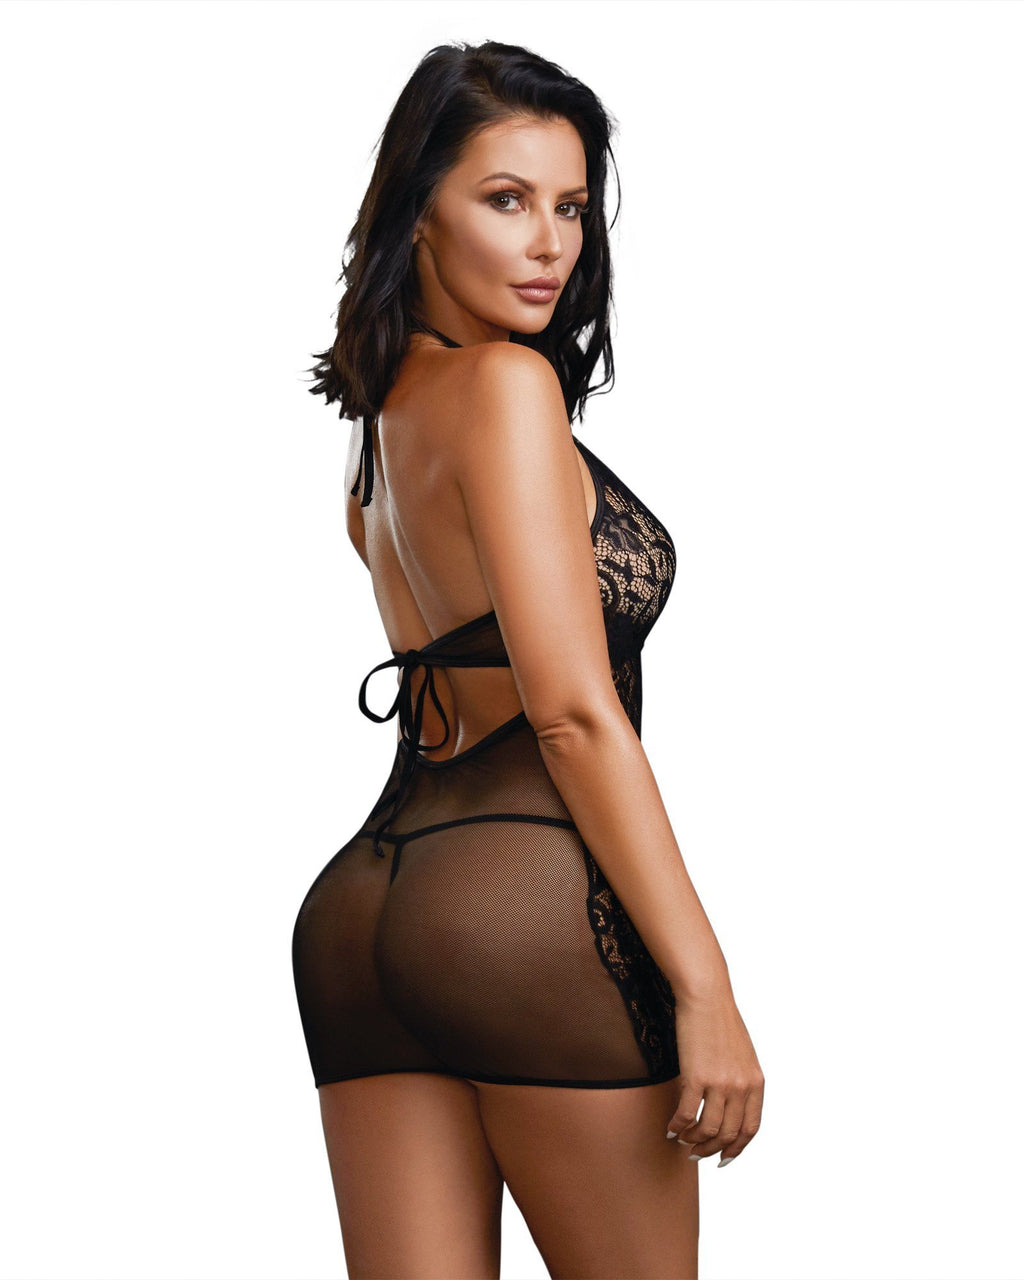 Baby Fishnet and Lace Halter Chemise with Matching G-String Chemise Dreamgirl International